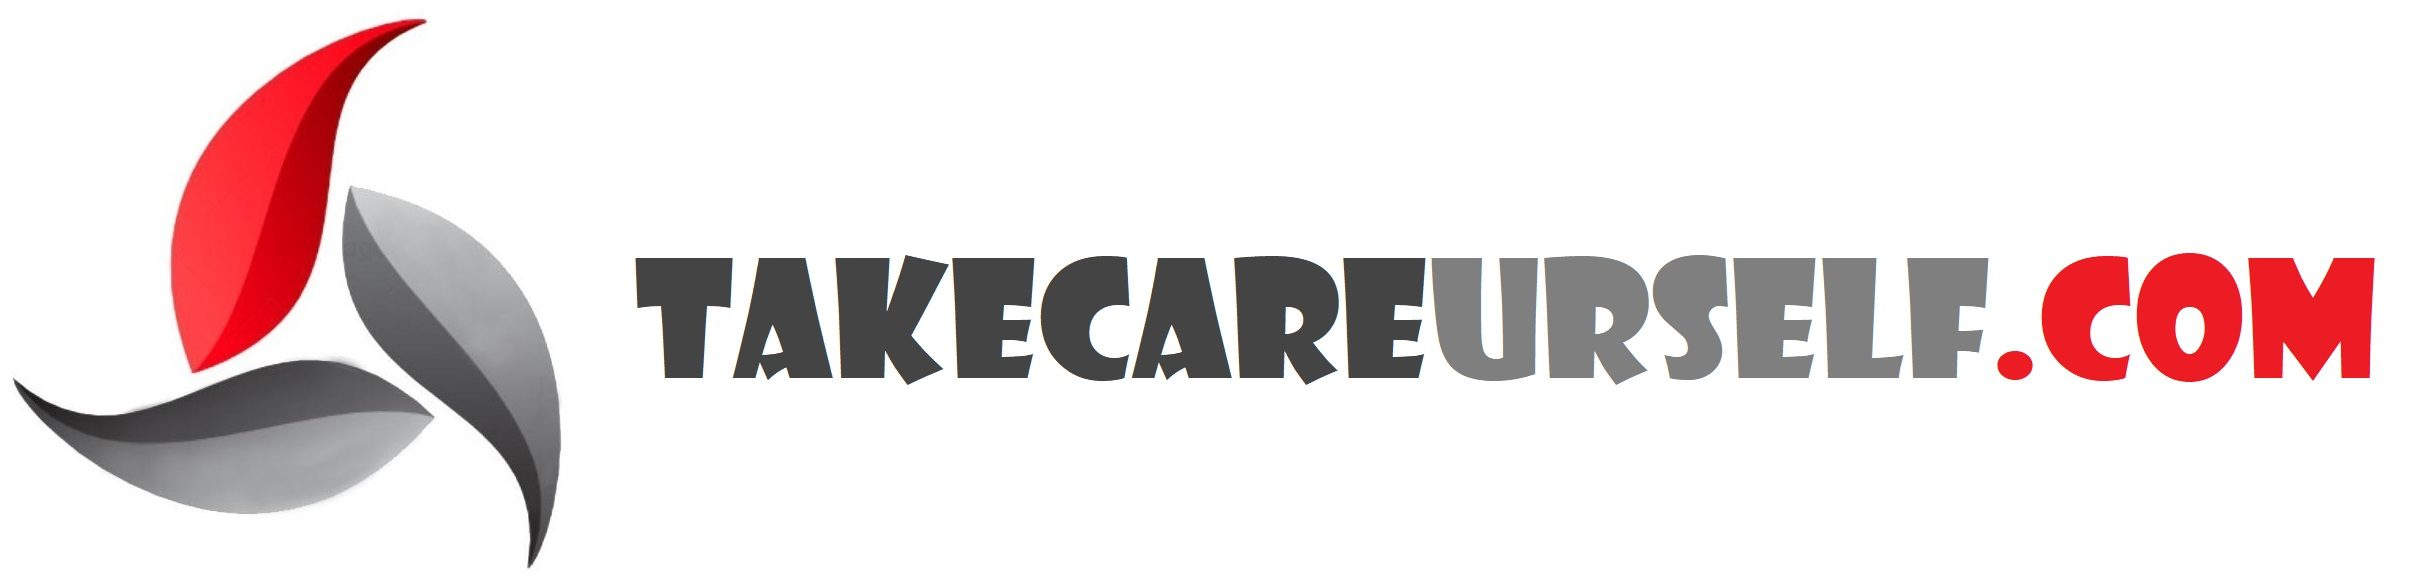 TakeCareUrself.com